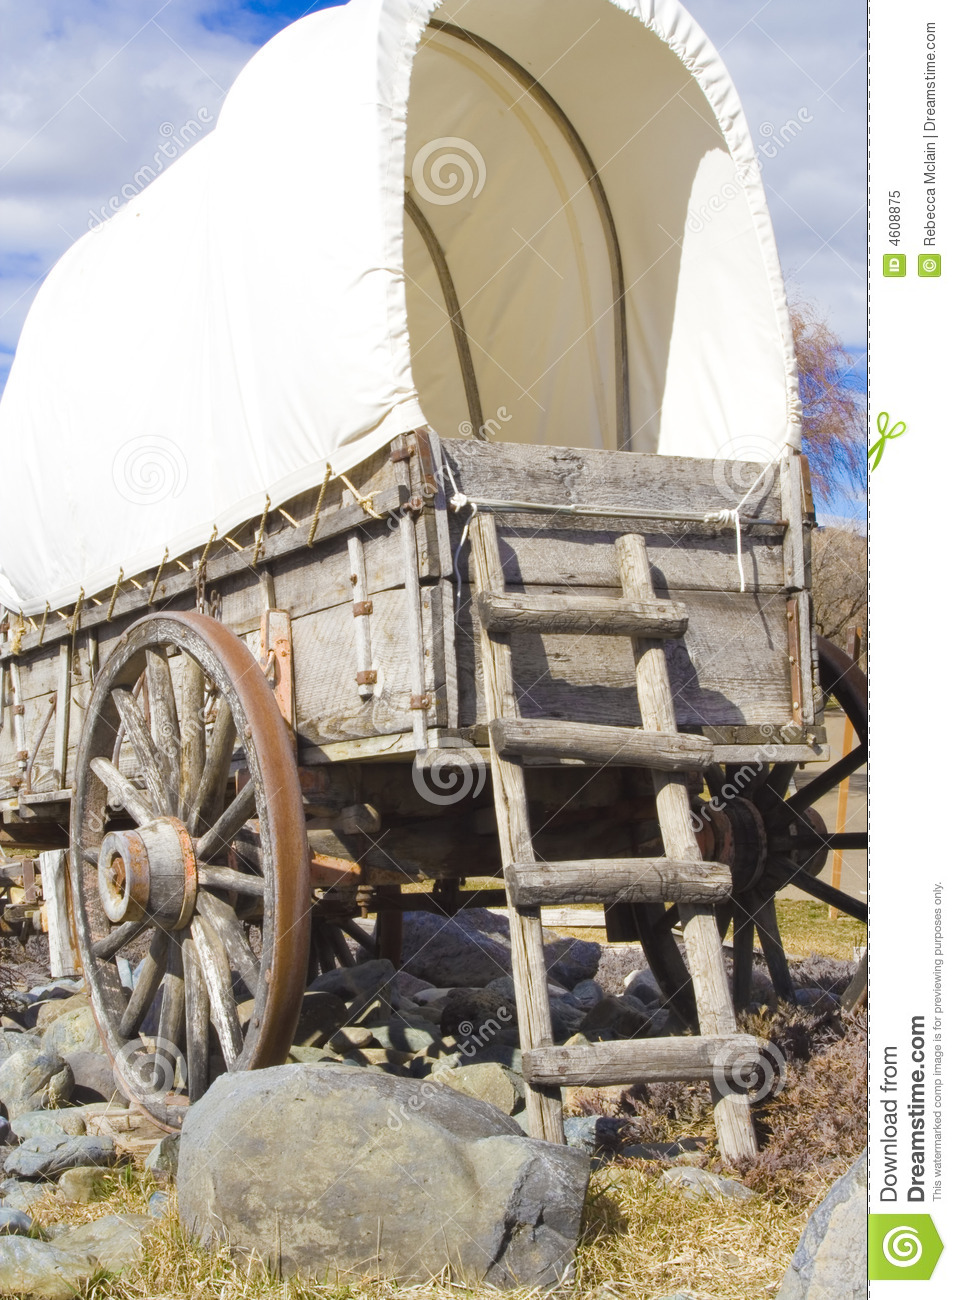 Covered Wagon Rear Photos Free Royalty Free Stock Photos From Dreamstime